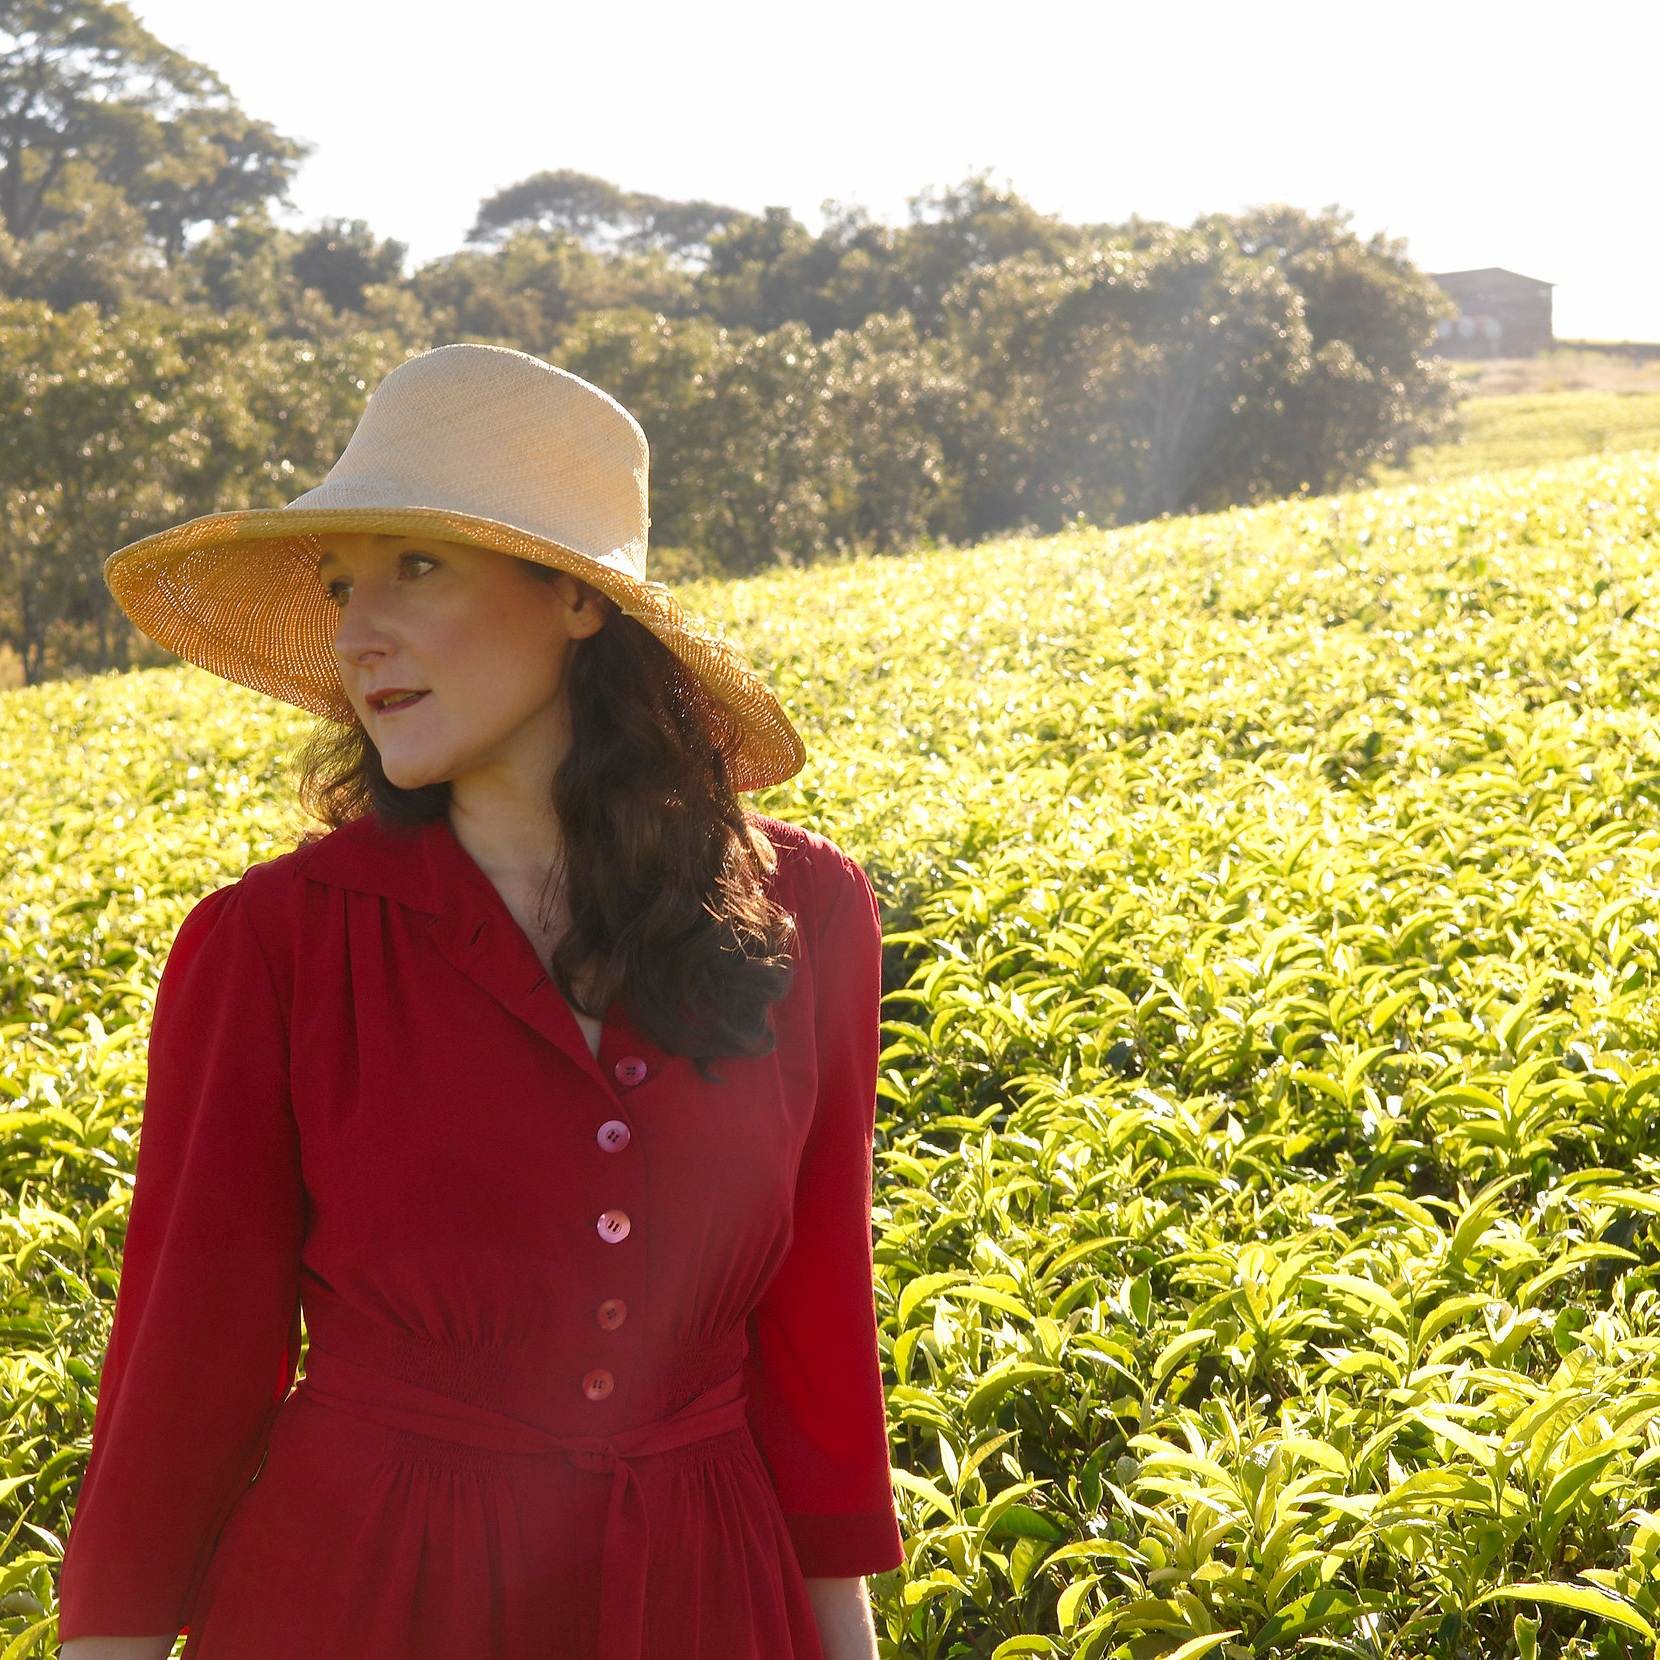 Henrietta Lovell, widely known as the Rare Tea Lady, is the founder and CEO of the award-winning, global brand Rare Tea Company. -